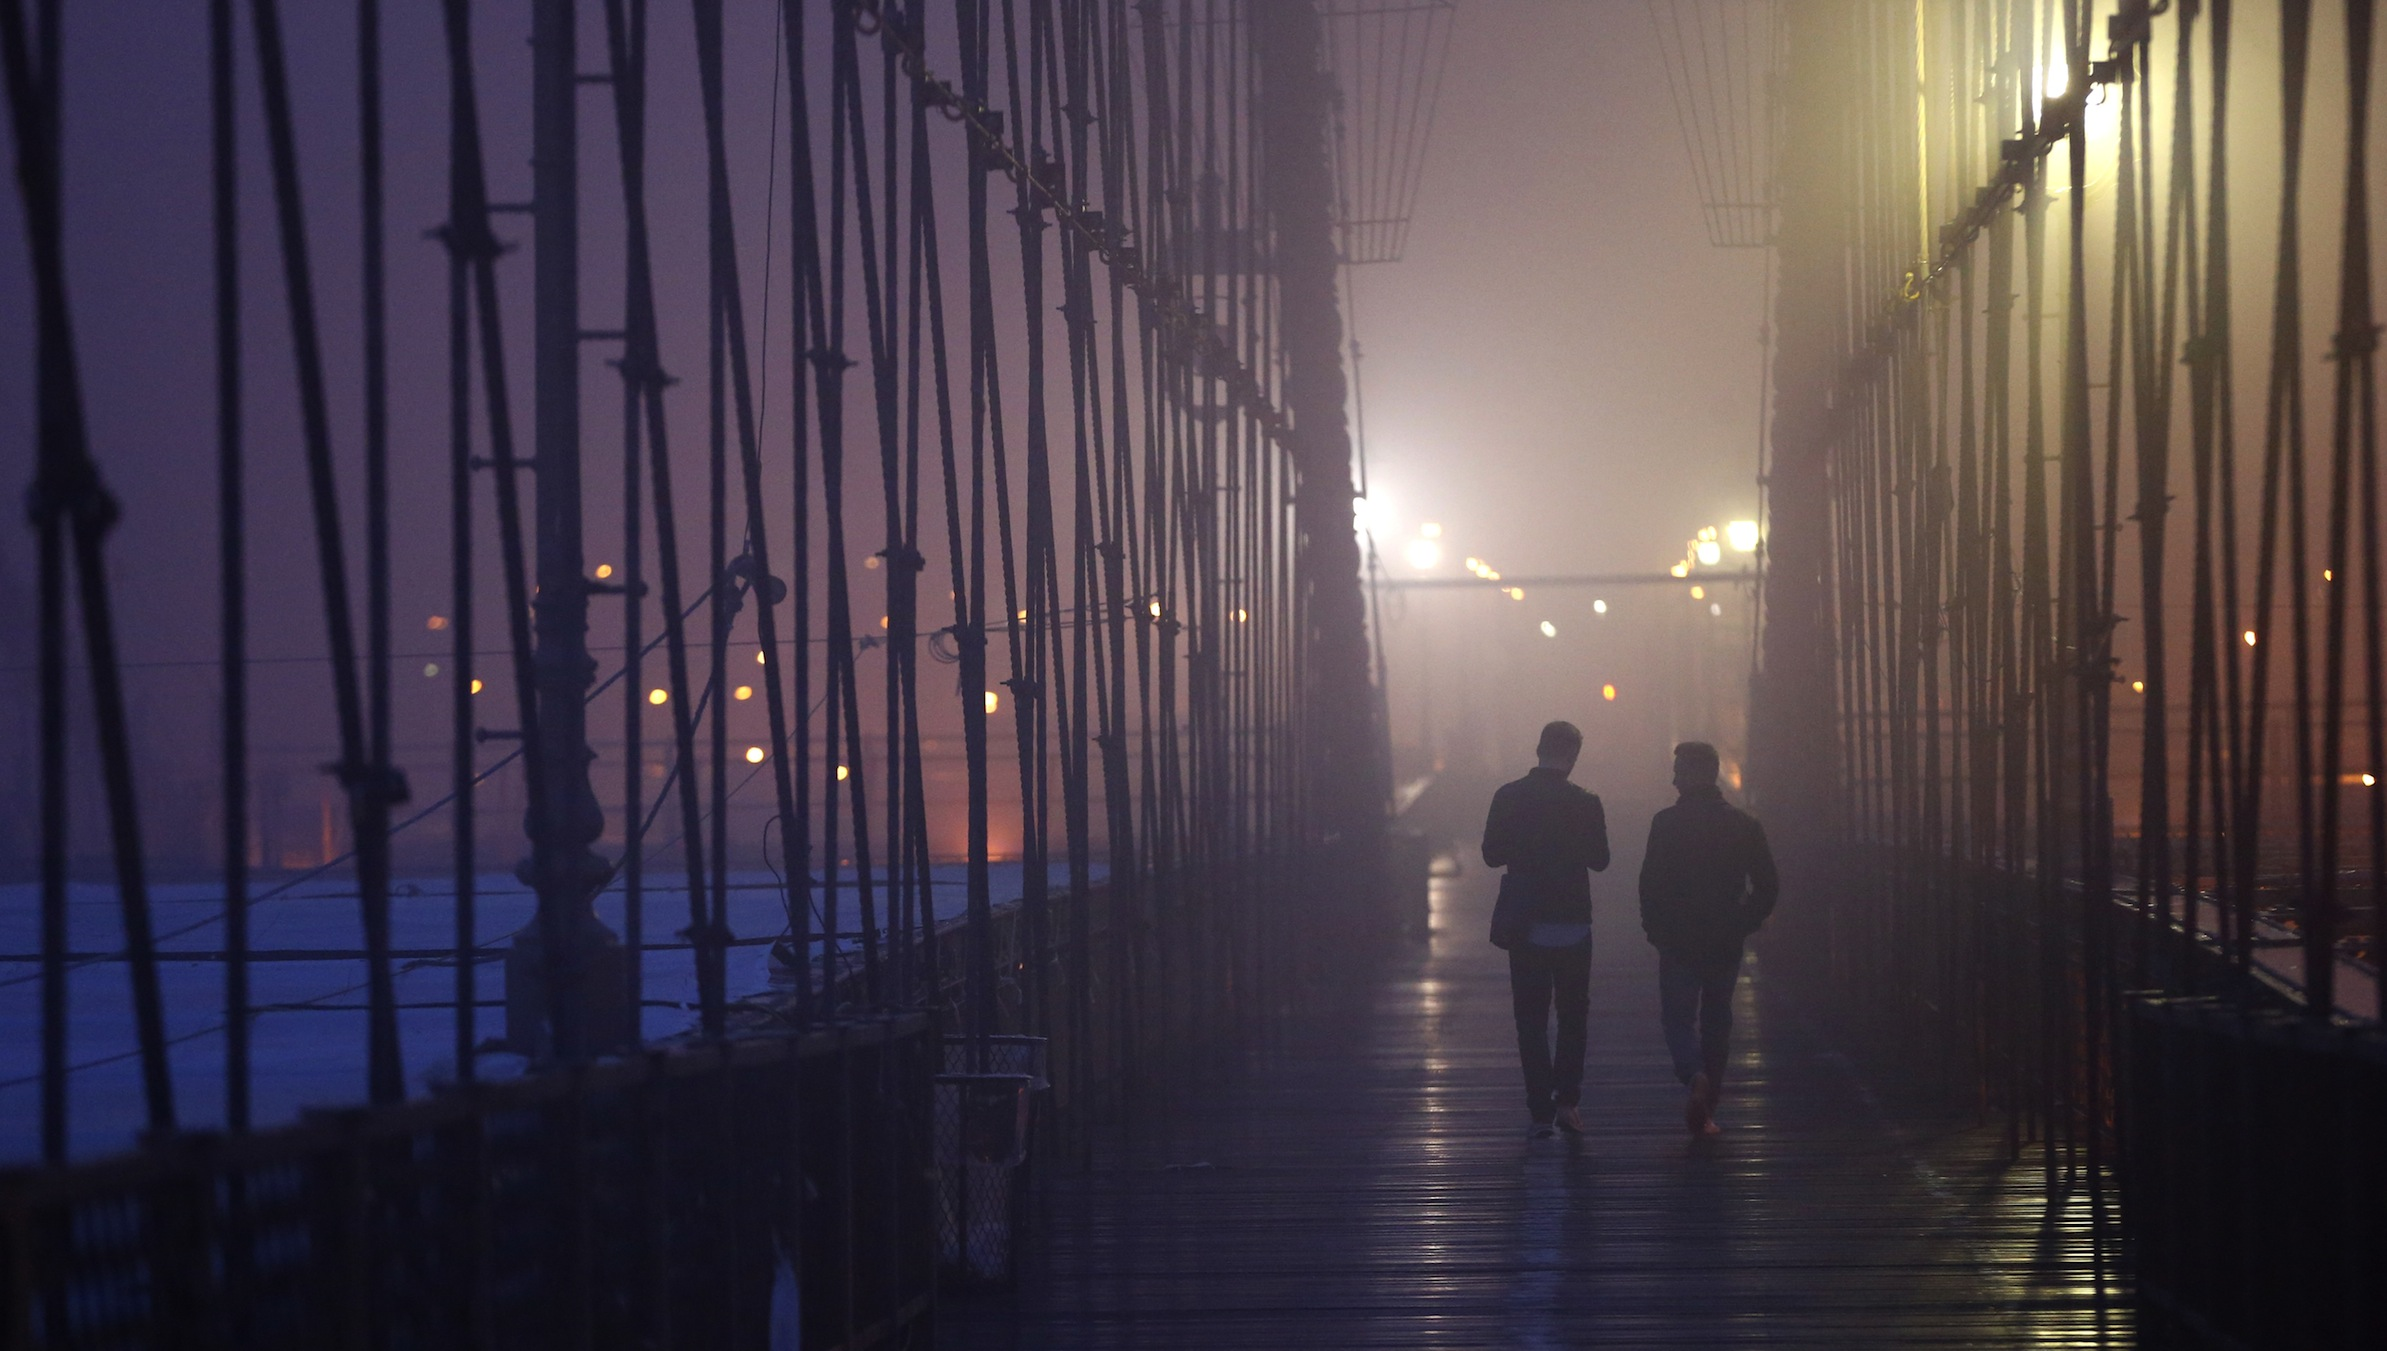 Swiss tourists Philipp Klausner, left, and Marco Varmettler walk on the Brooklyn Bridge as early morning fog covers New York City, Saturday, May 10, 2014. (AP Photo/Julio Cortez)